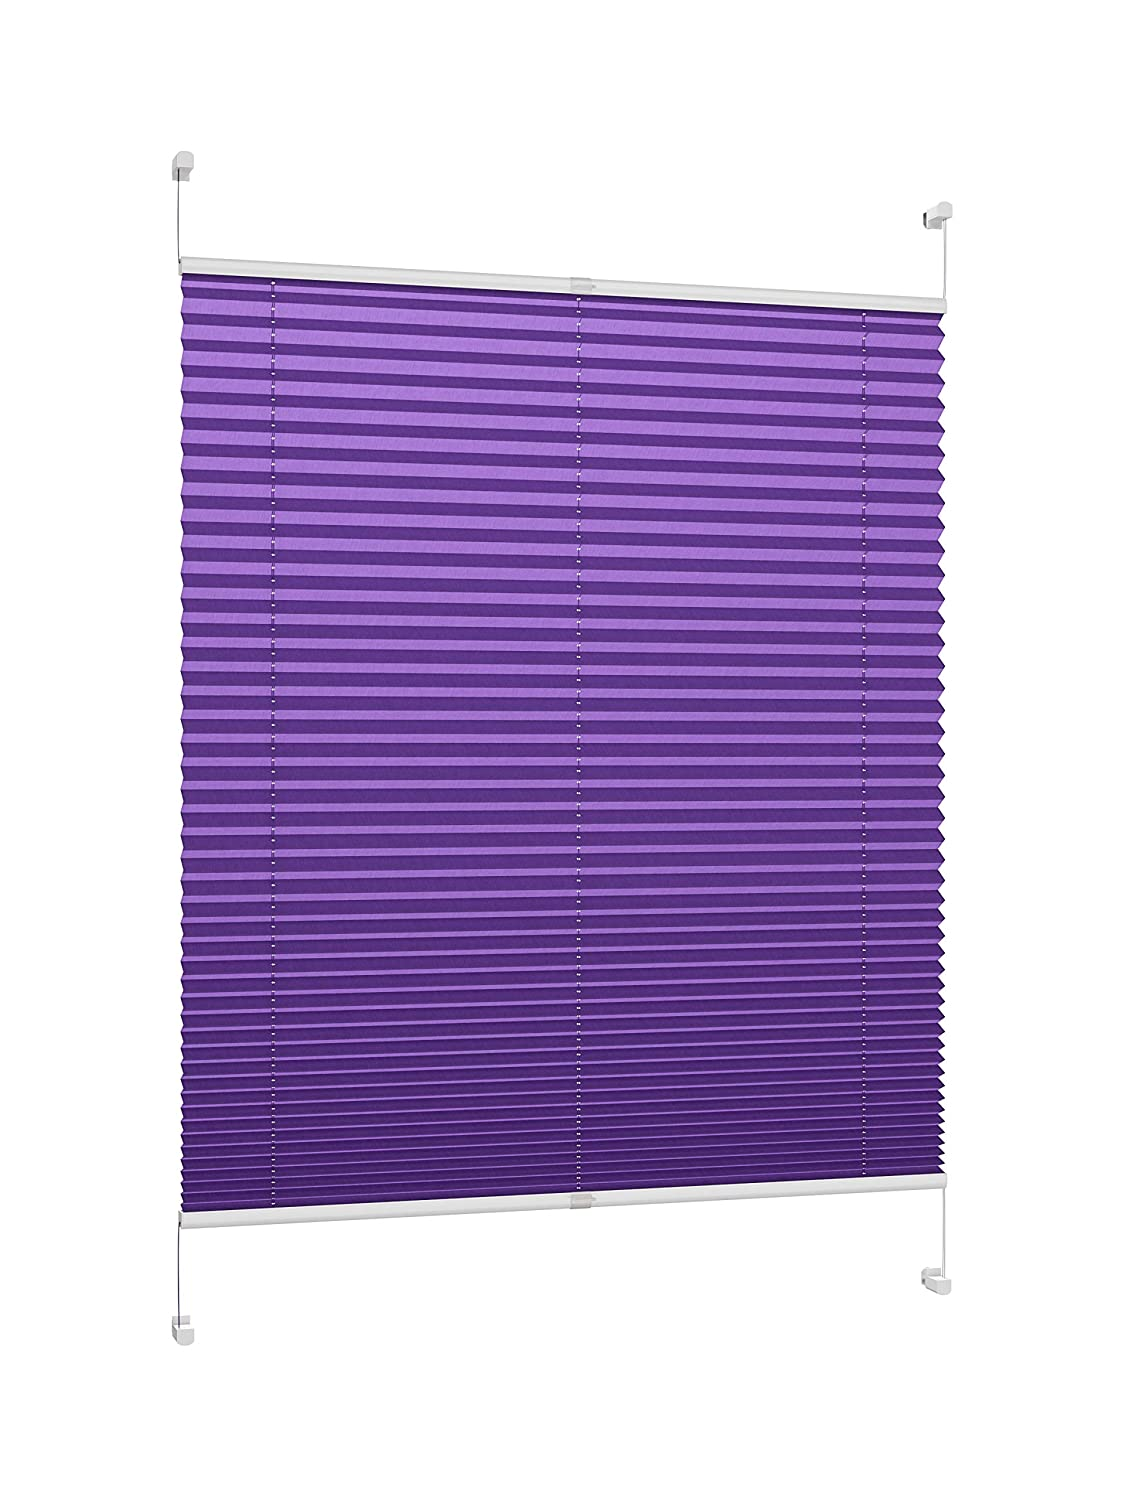 DecoProfi Pleated Tension Blinds, Purple, Width 35 x 130cm (Max. Total Height of Window Casement) with Clamp Supports/Clamp Fixings/No Drilling PL03035130